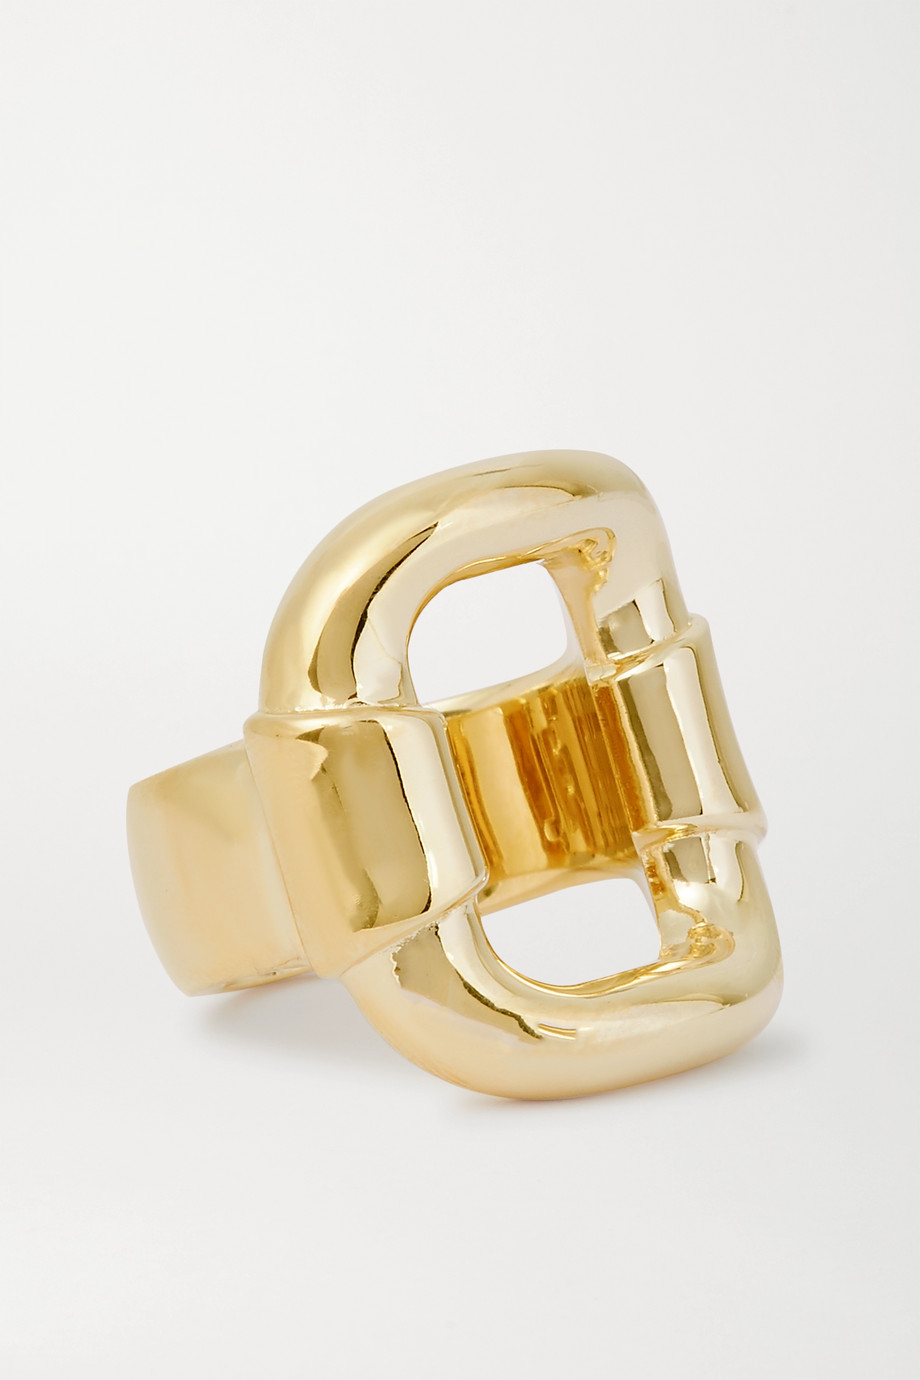 Jennifer Fisher Belt gold-plated ring